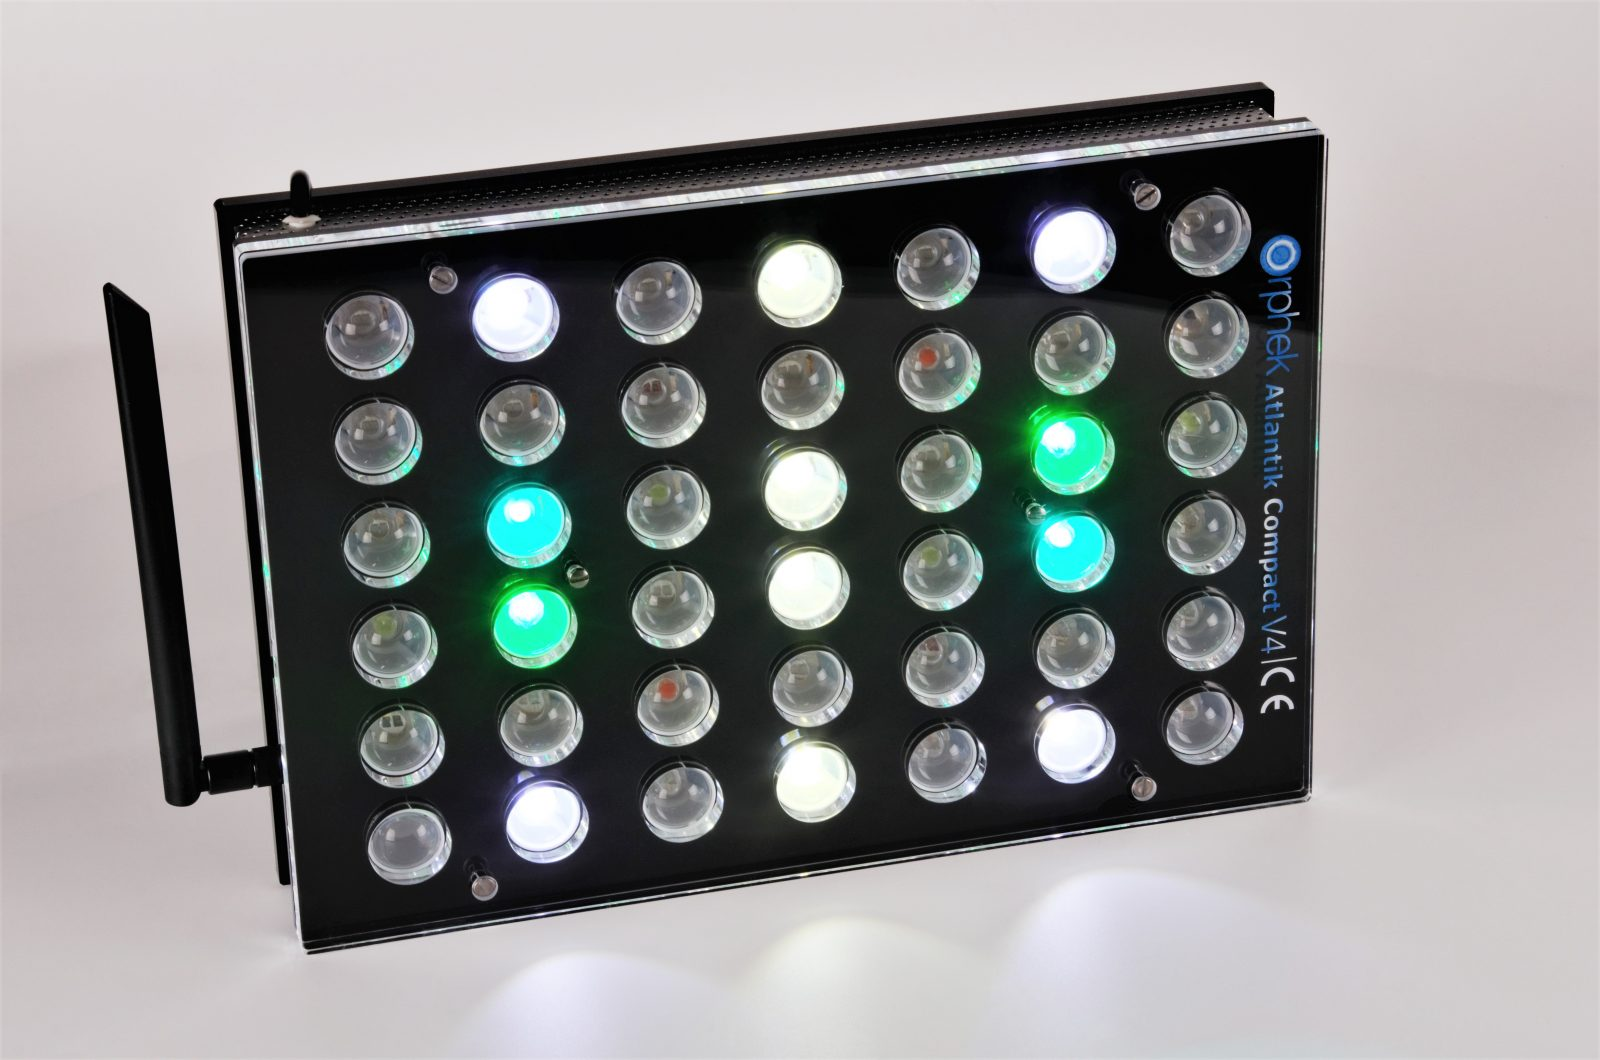 Orphek Aquarium LED Lighting ضوء Atlantik المضغوط V4 على قناة 1